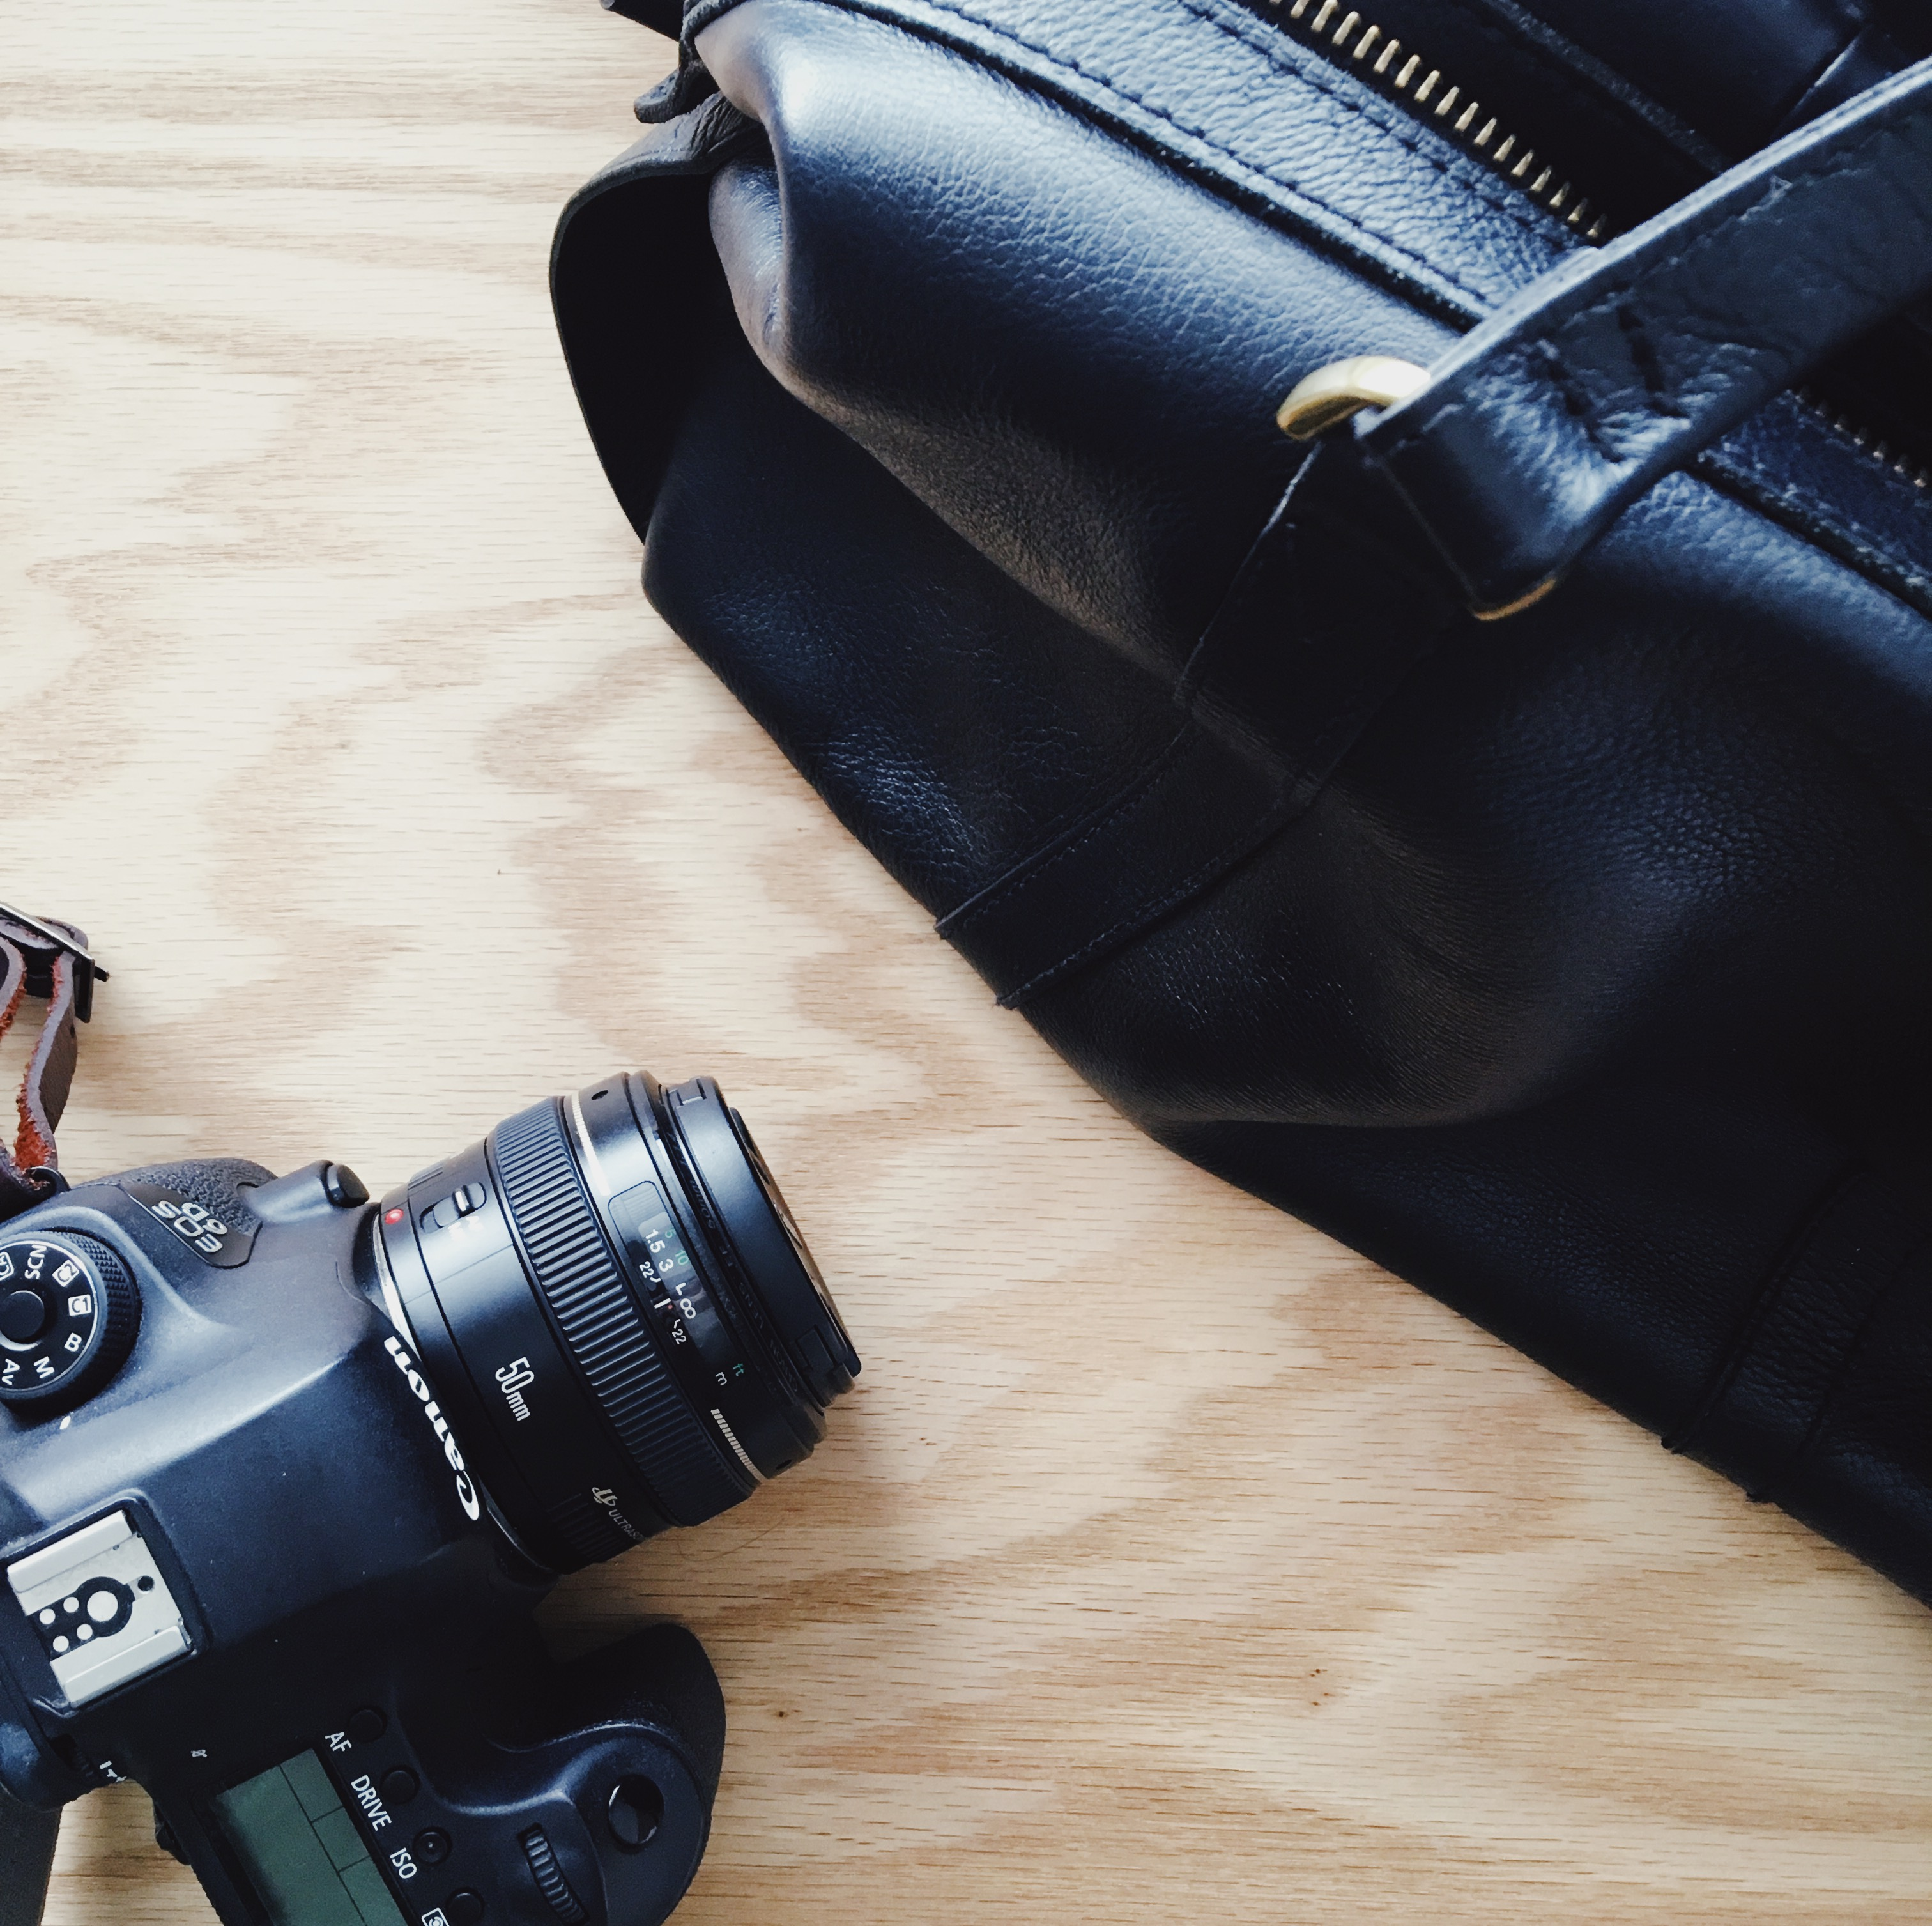 Photography Essentials for Bloggers